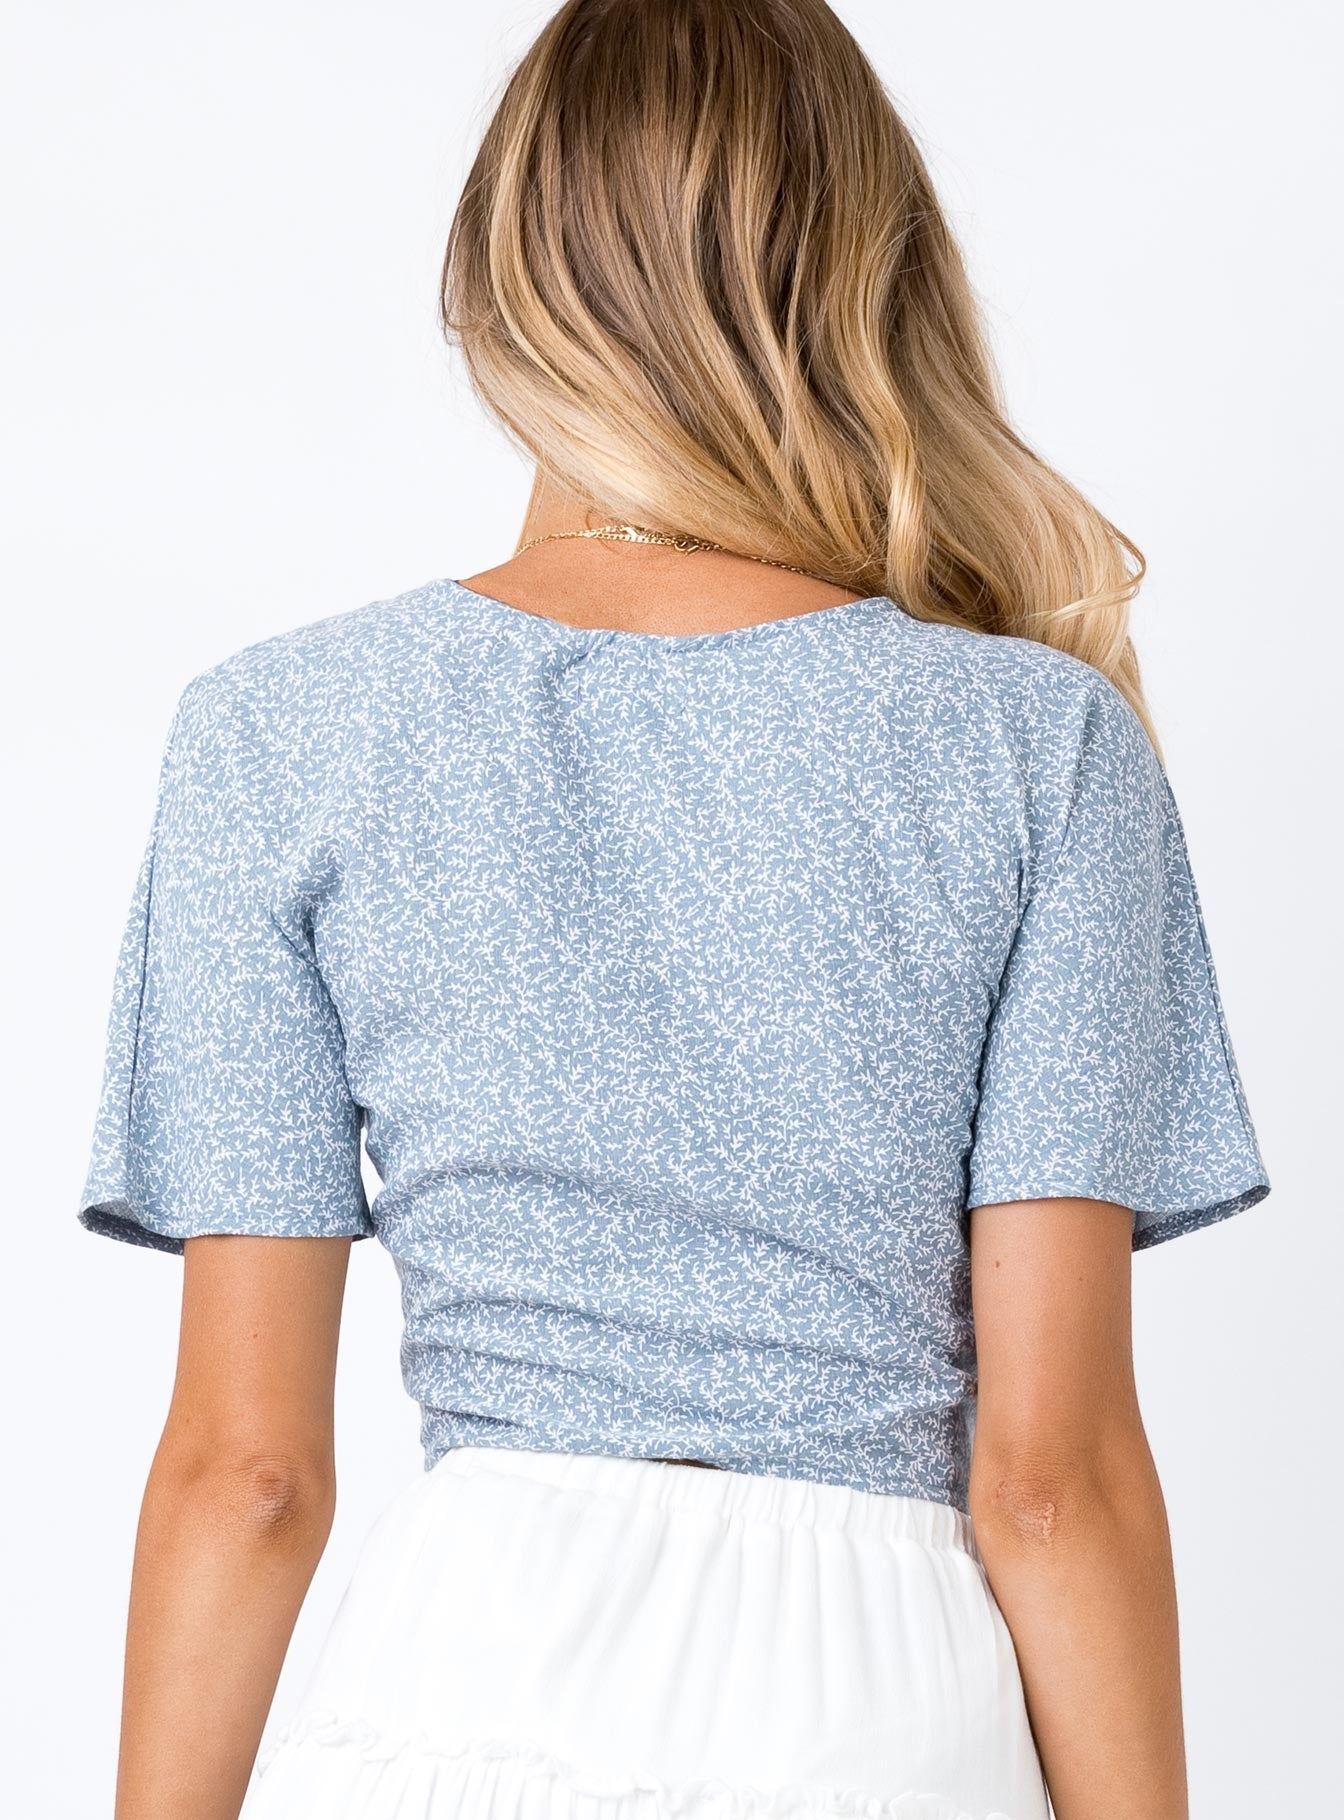 Jazzly Top Blue